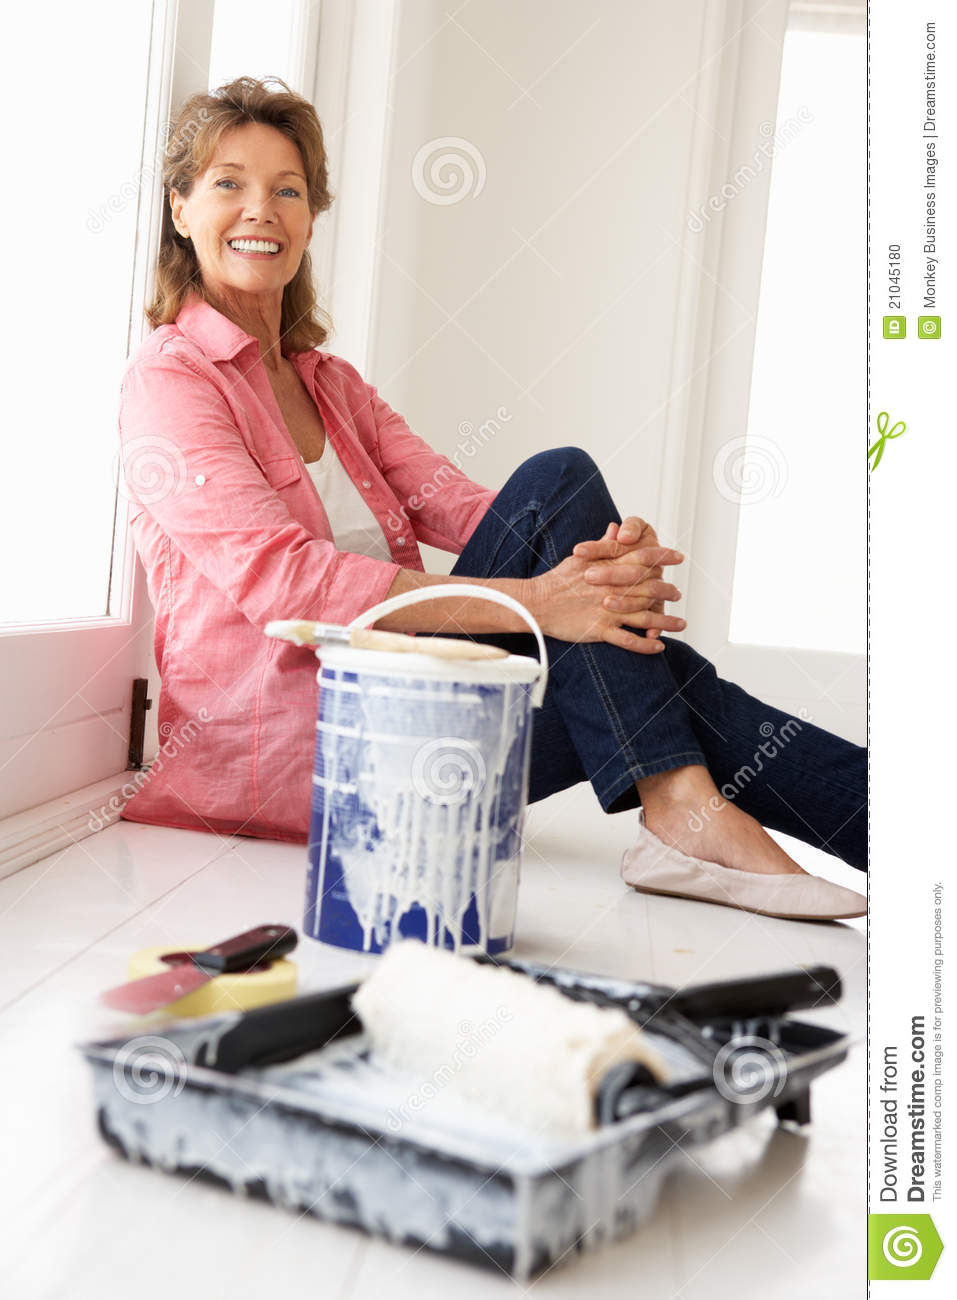 Living Room Decorating The House senior woman decorating house stock photo image 21045180 house